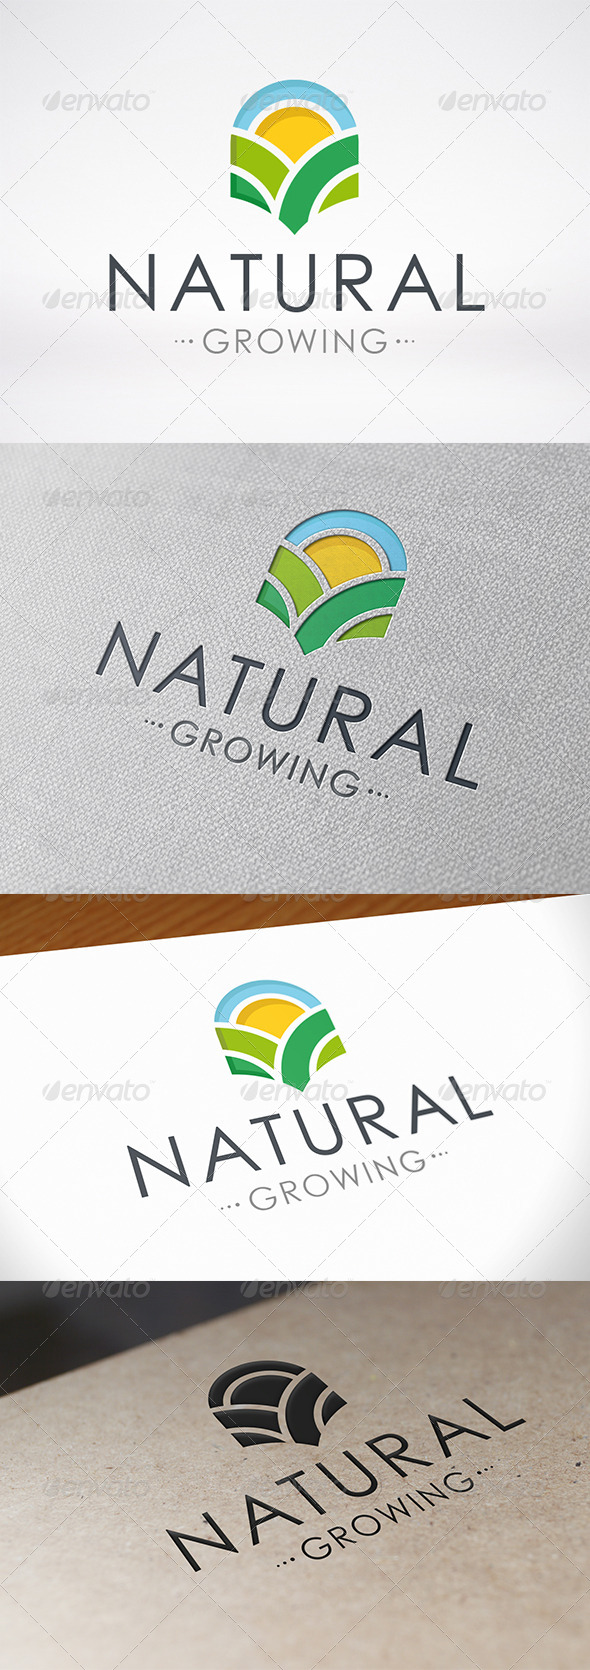 GraphicRiver Natural Growing Logo Template 6795977